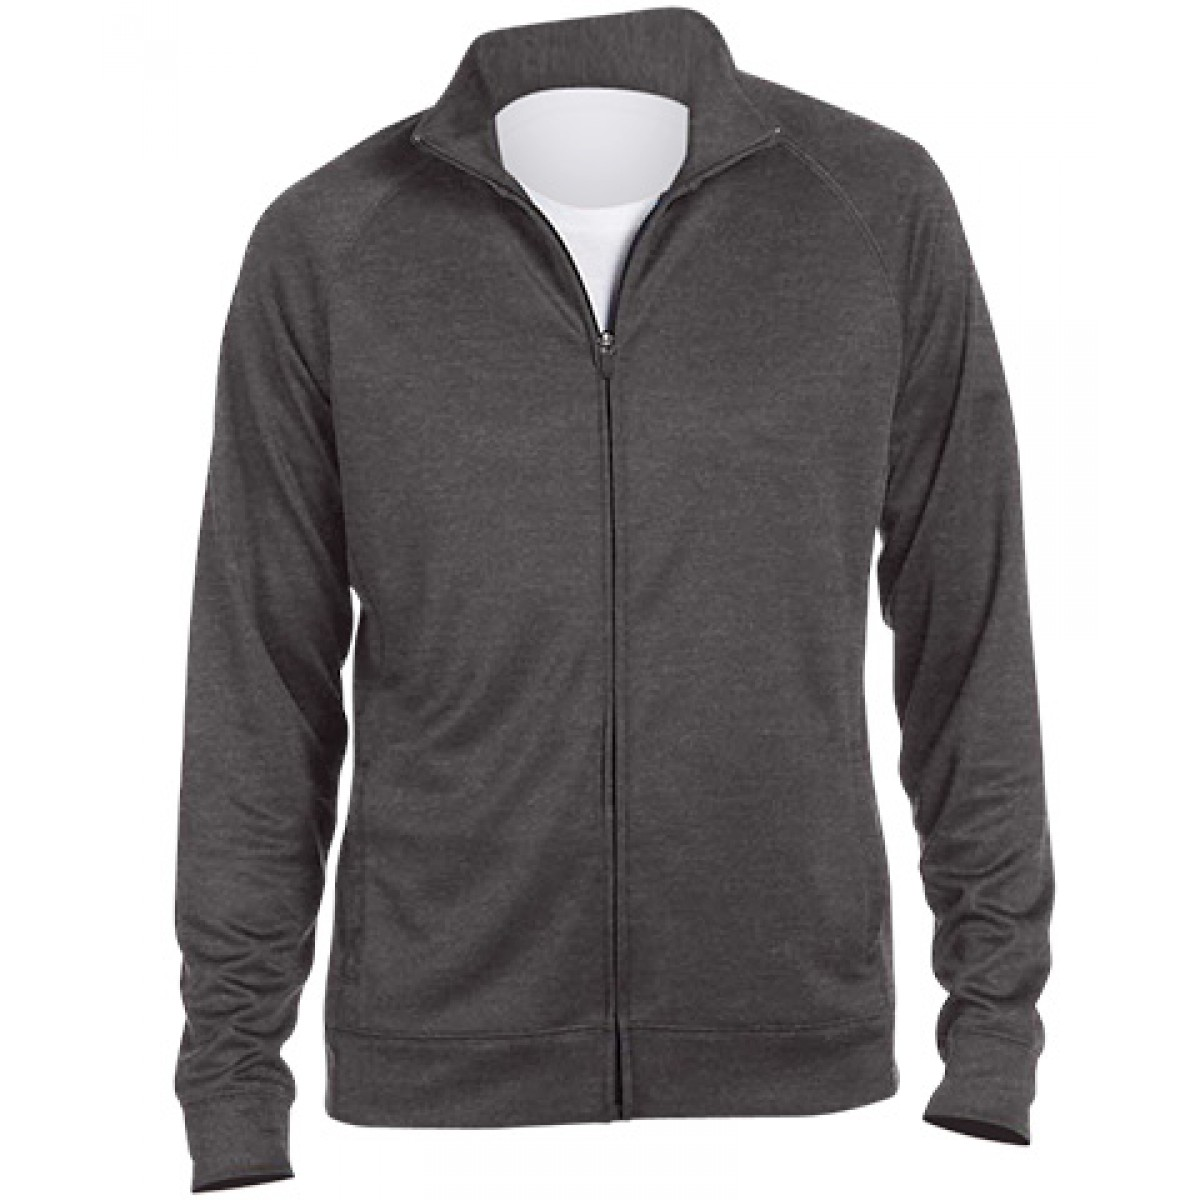 Embroidered Full Zip Grey Lightweight Sports Jacket